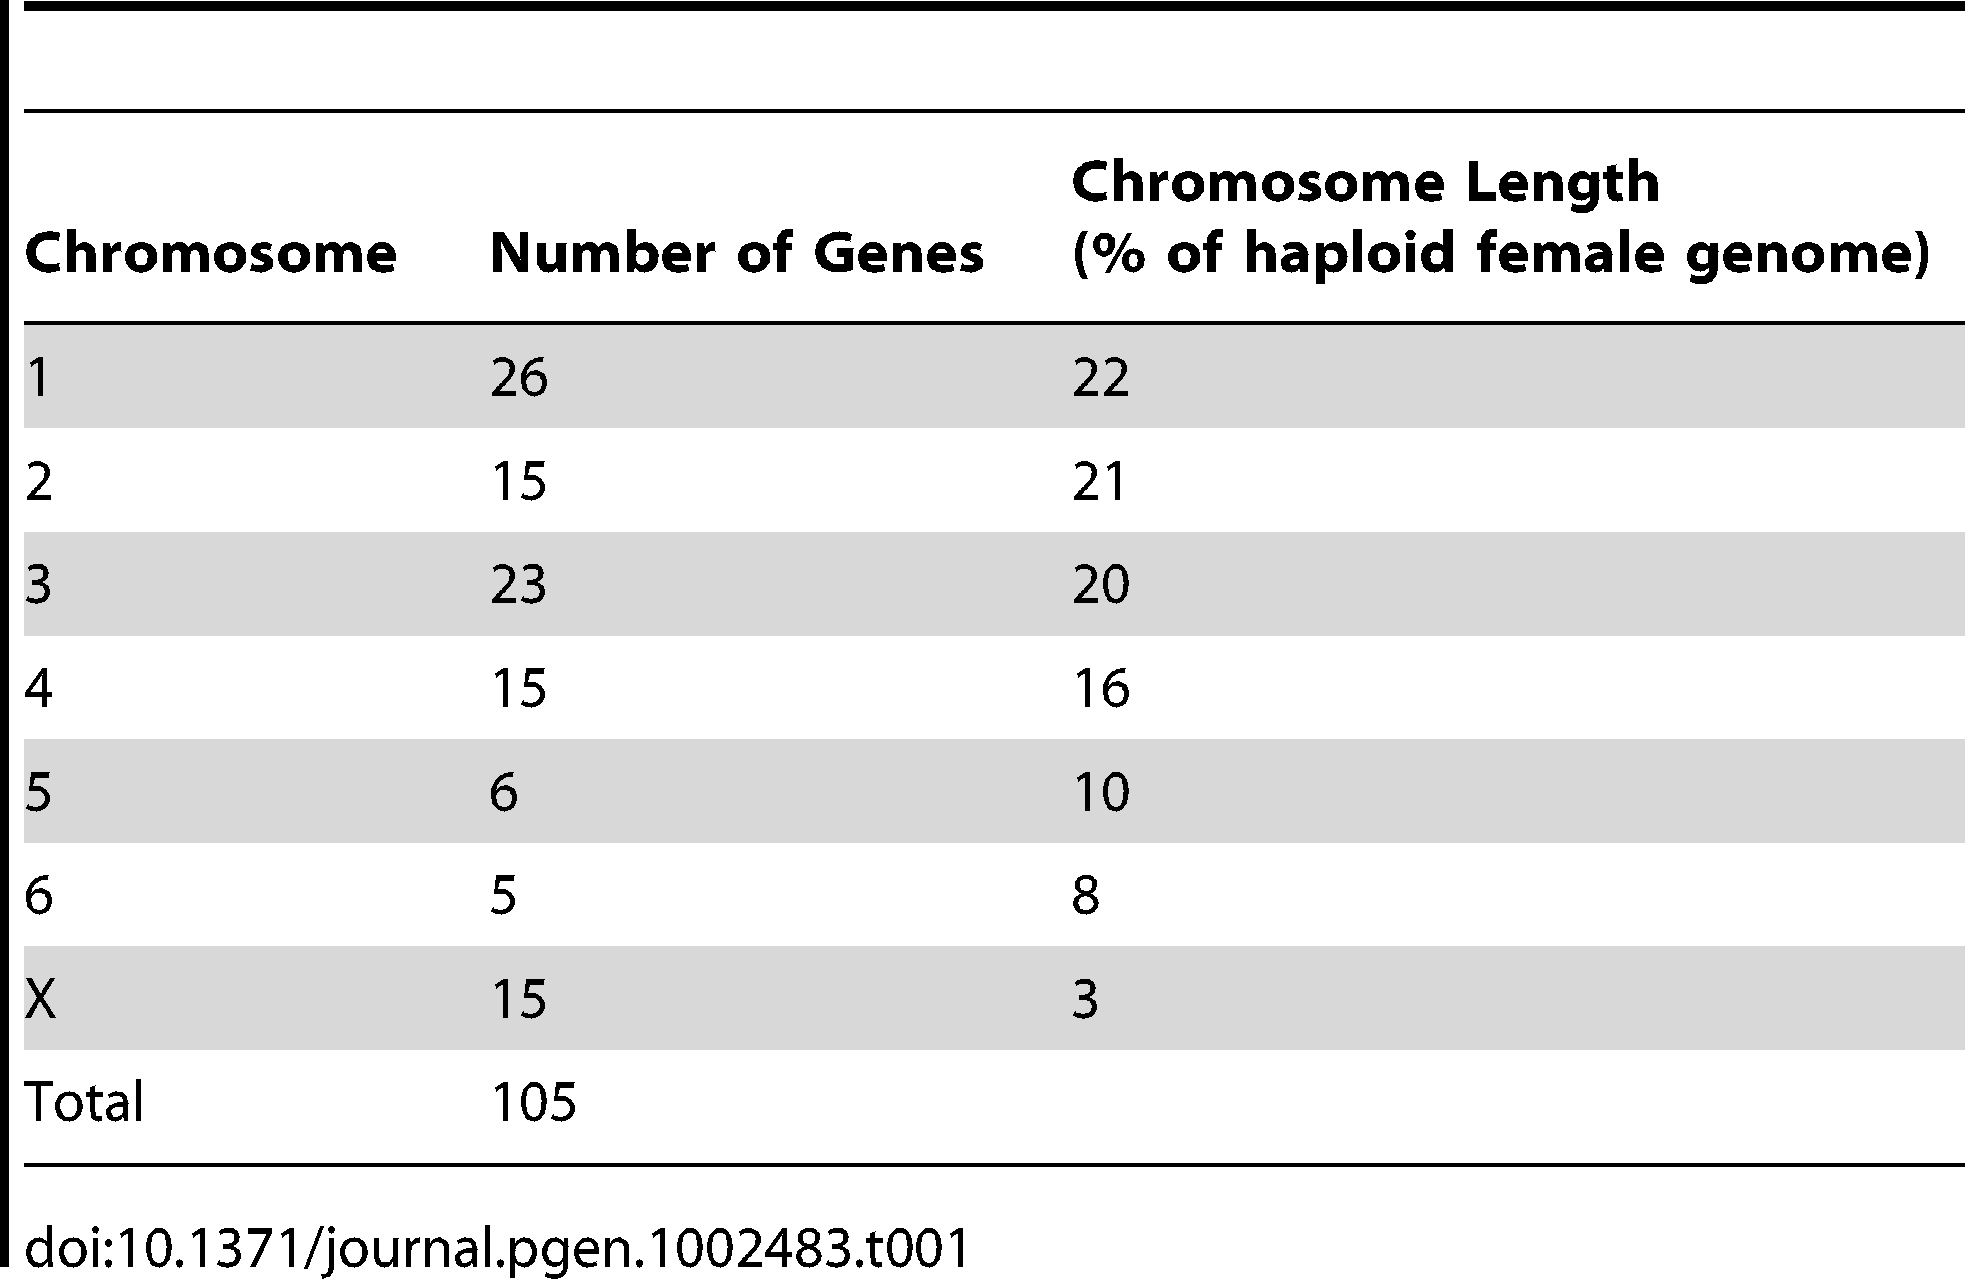 Number of genes mapped to each normal devil chromosome.